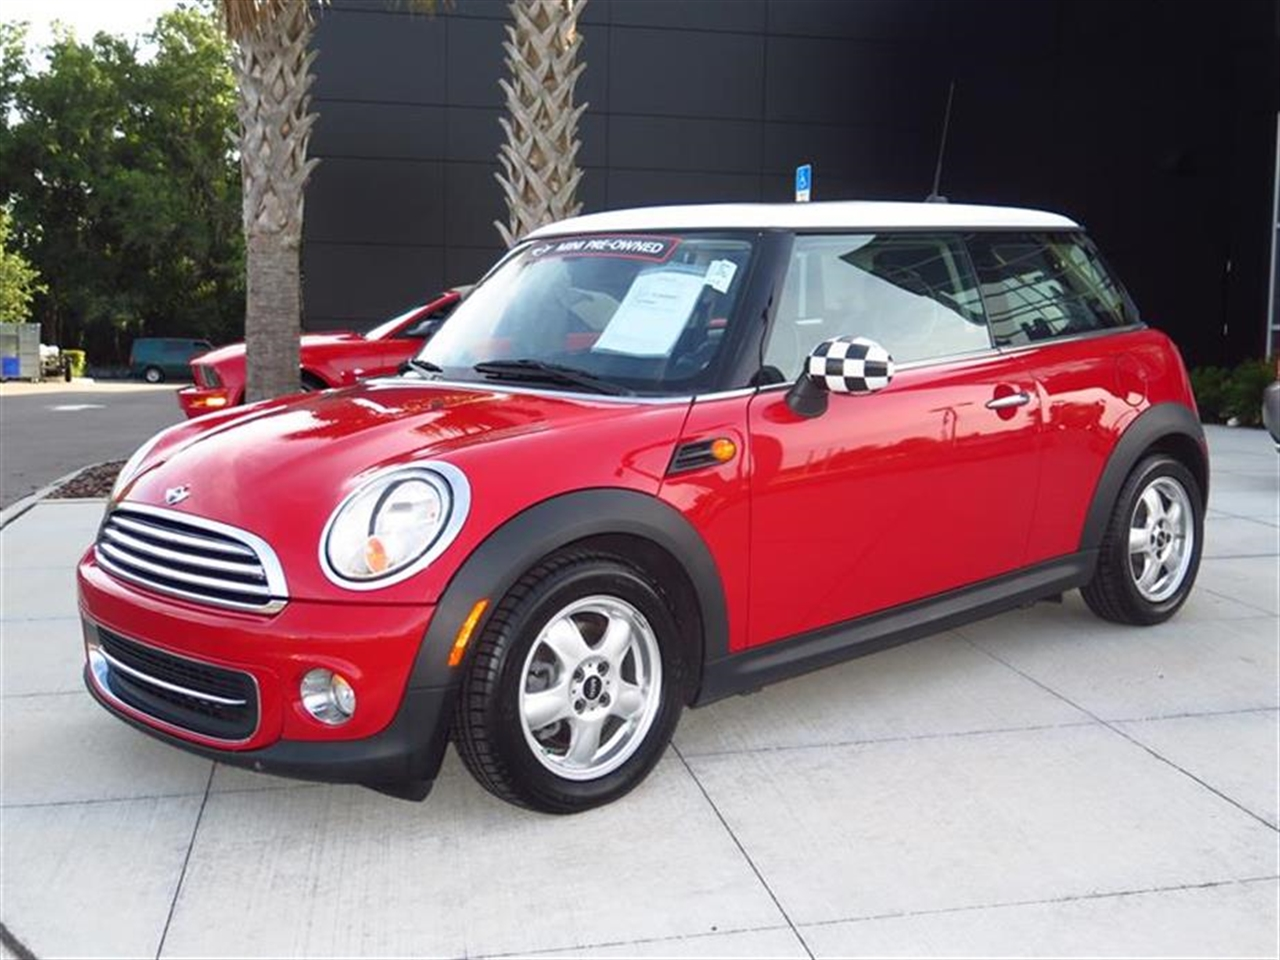 2011 MINI COOPER HARDTOP 2dr Cpe 77242 miles 1 rear cup holder 12V auxiliary pwr outlet in cock